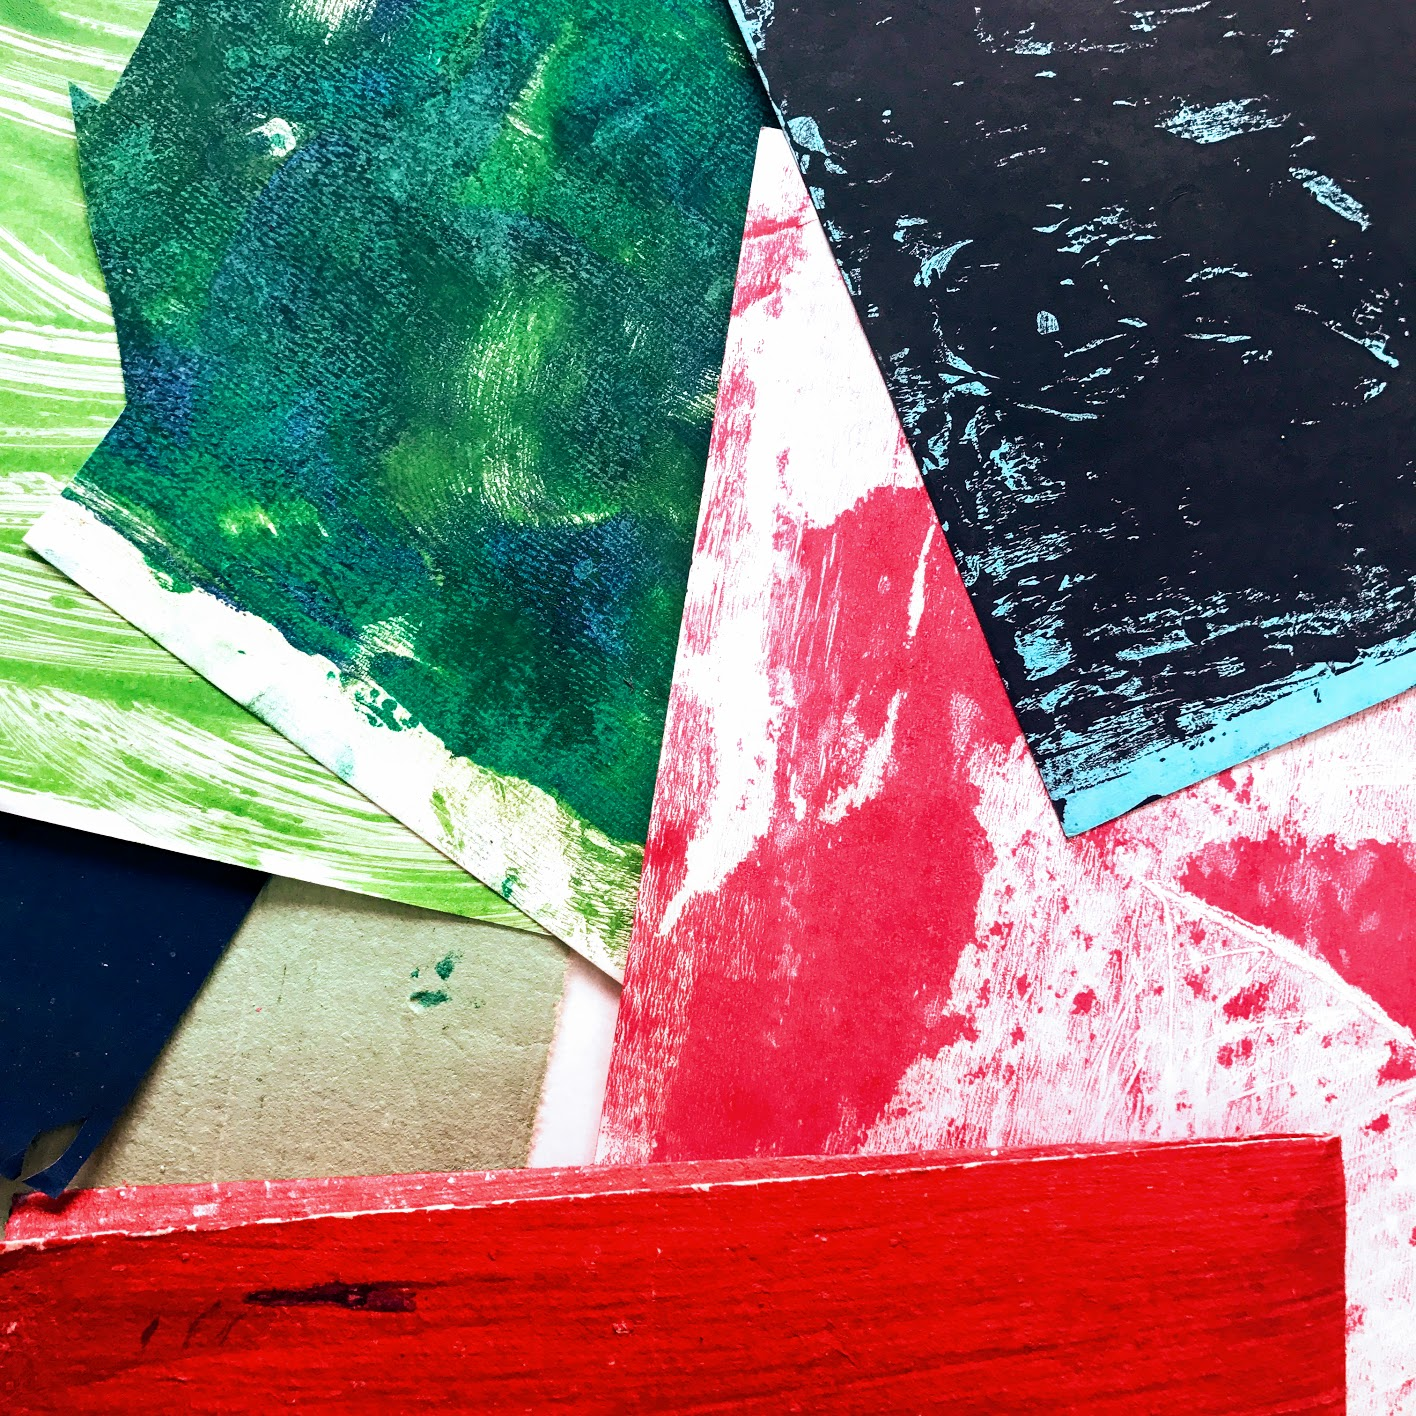 Creating textures with acrylic paints, ink and craft papers.